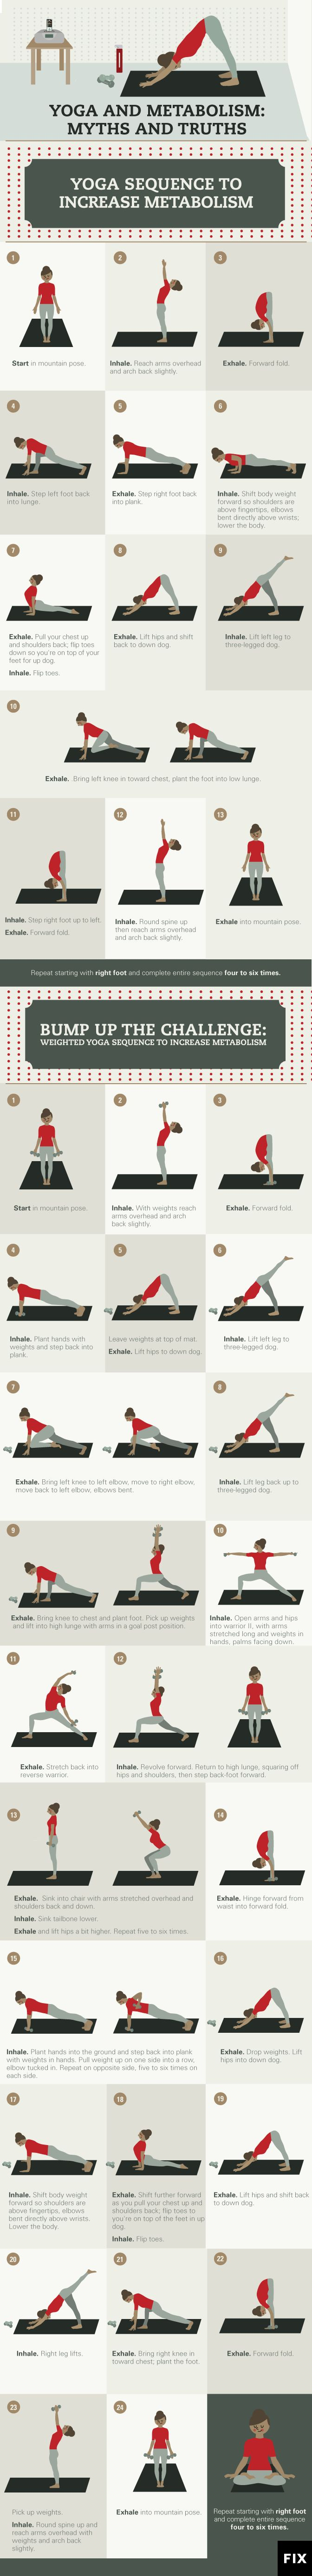 Can Yoga Increase Your Metabolism? - Cool Healthy Life #yoga